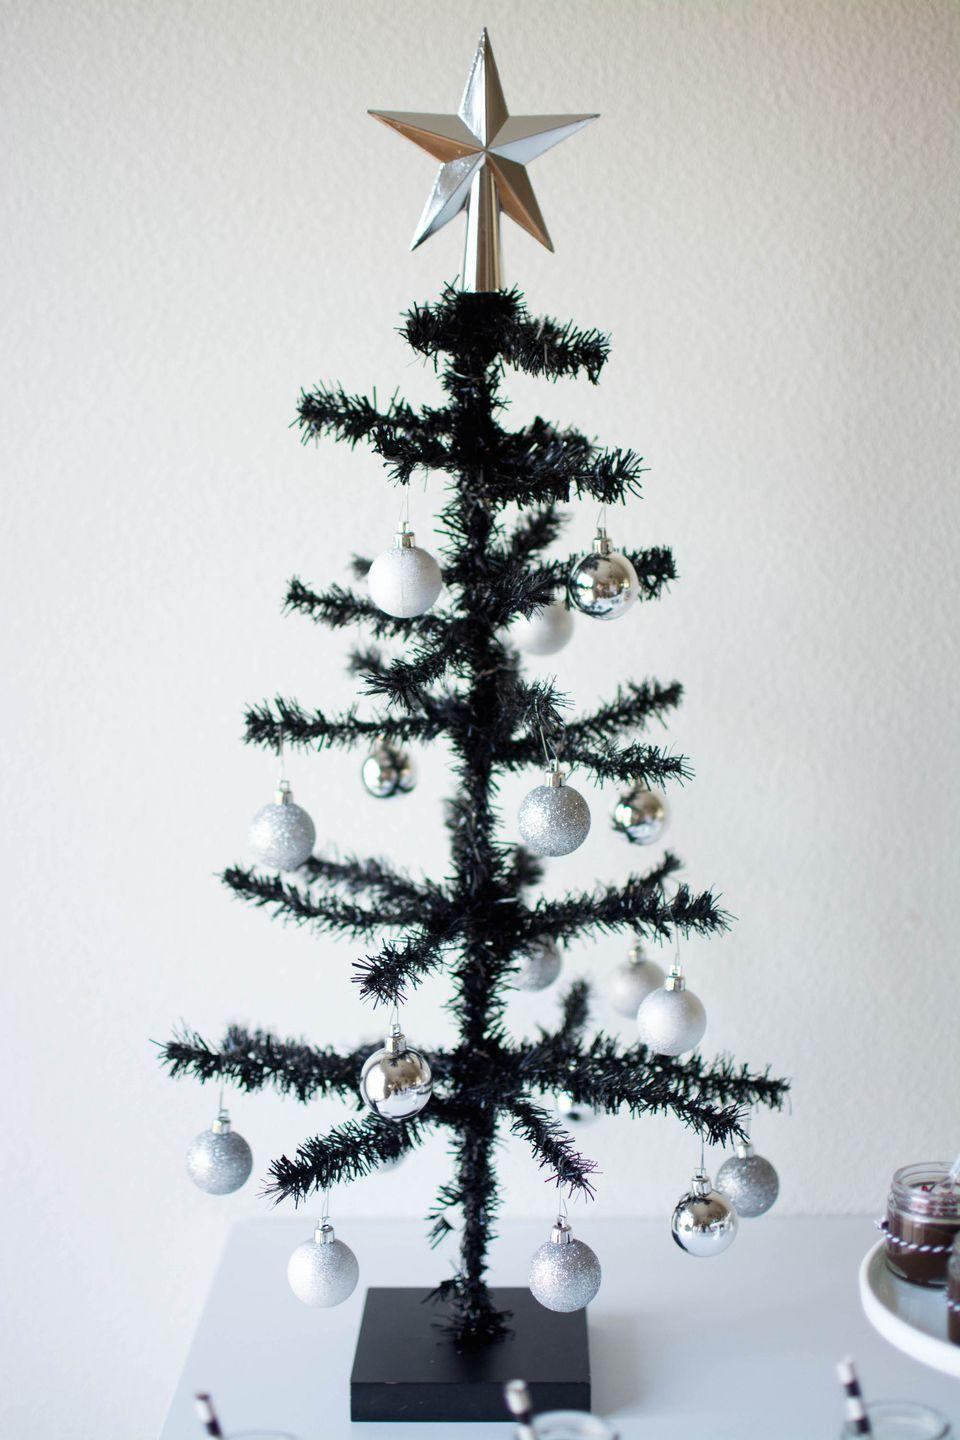 "<p>There is unmistakable charm in a scroungy tree, as our favorite animated holiday movie once taught. Adorn a skinny Christmas tree with simple silver ornaments to give a little tree big spirit, as <a href=""http://www.twinkletwinklelittleparty.com/host-a-gingerbread-party/"" rel=""nofollow noopener"" target=""_blank"" data-ylk=""slk:Twinkle Twinkle Little Party"" class=""link rapid-noclick-resp"">Twinkle Twinkle Little Party</a> brilliantly did here. </p>"